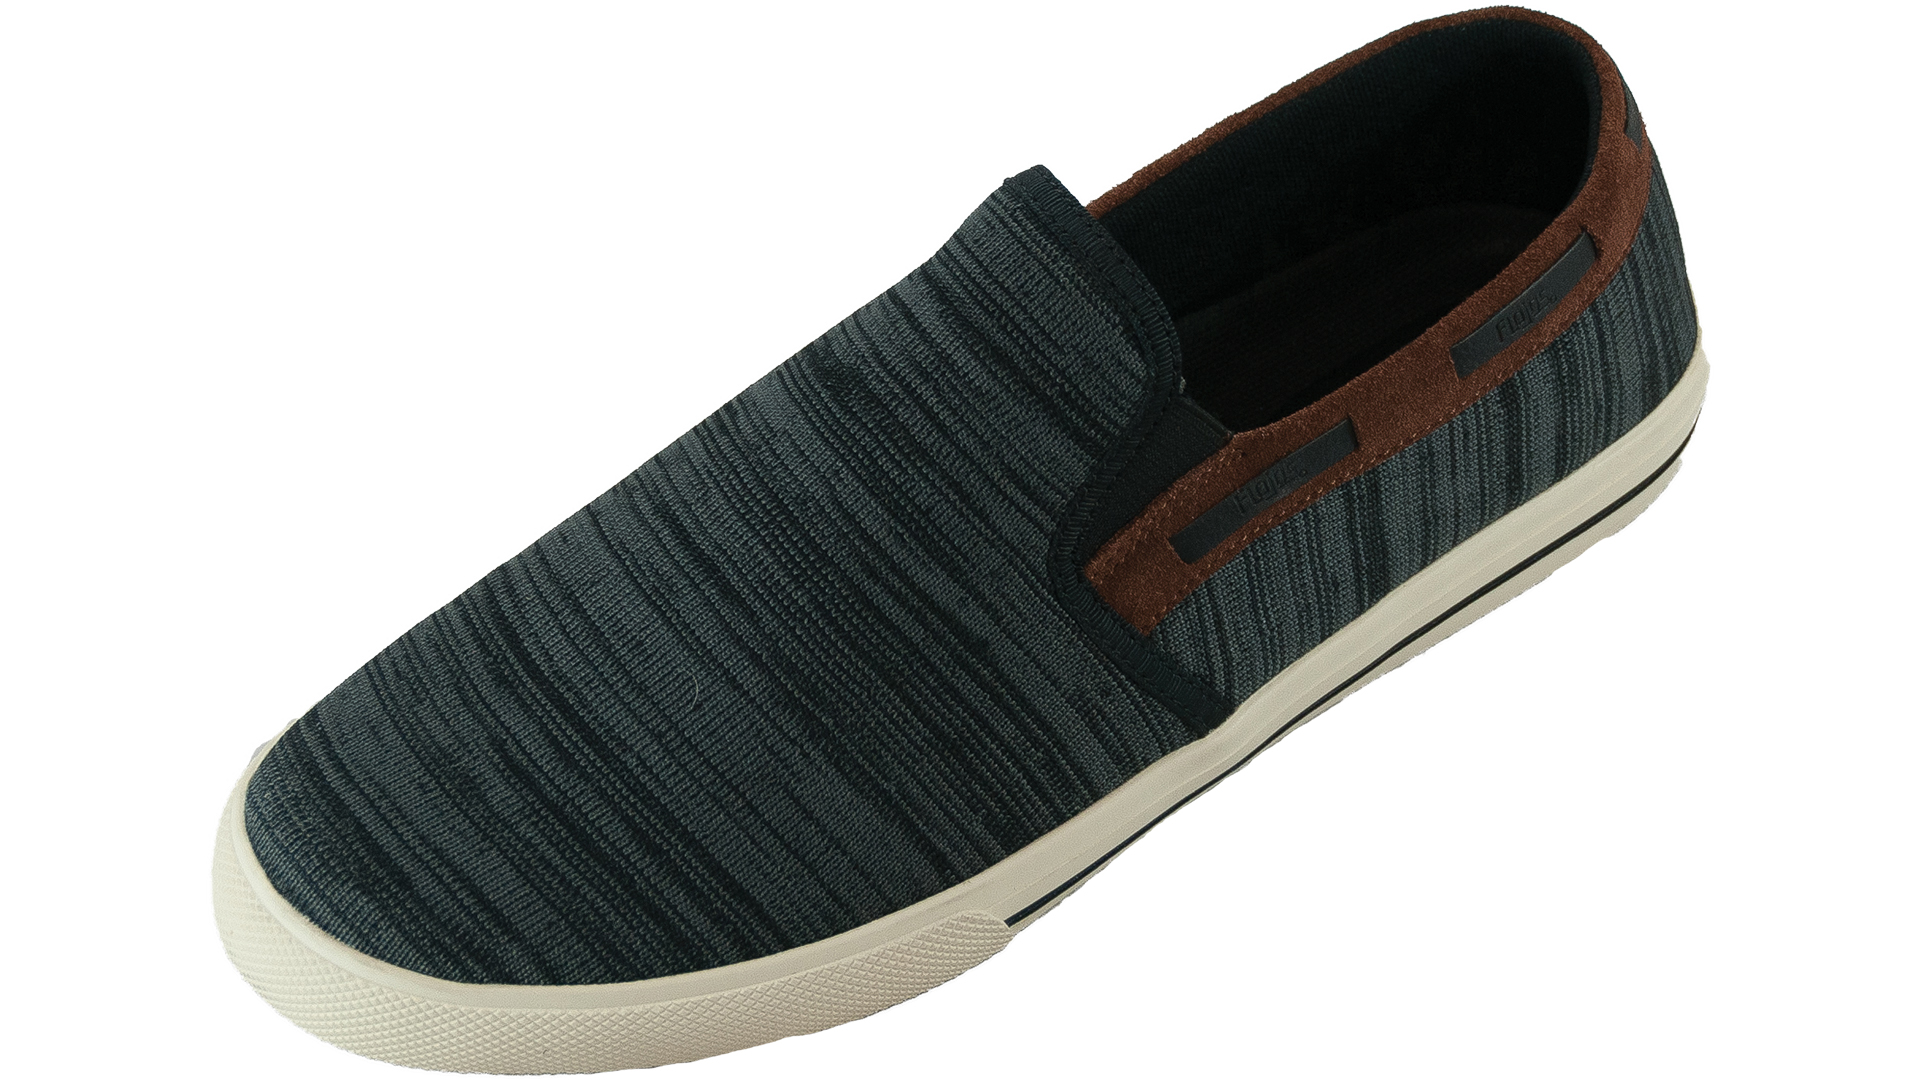 Flojos Mens Cozumel Slip On Sneaker (Black Brown, 9.5) by